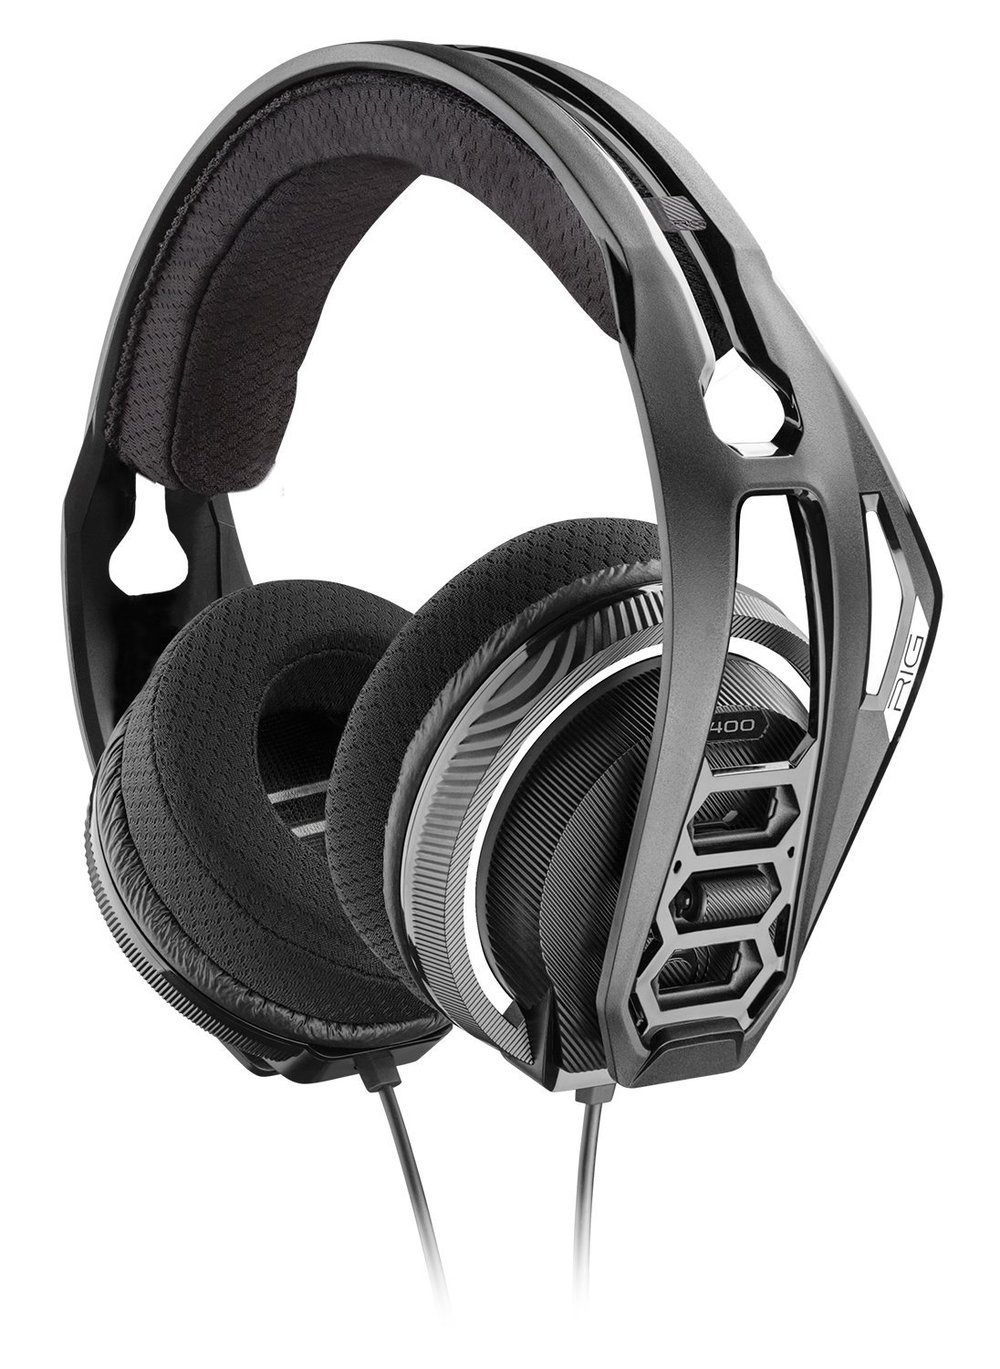 Plantronics RIG 400LX Gaming Headset Review